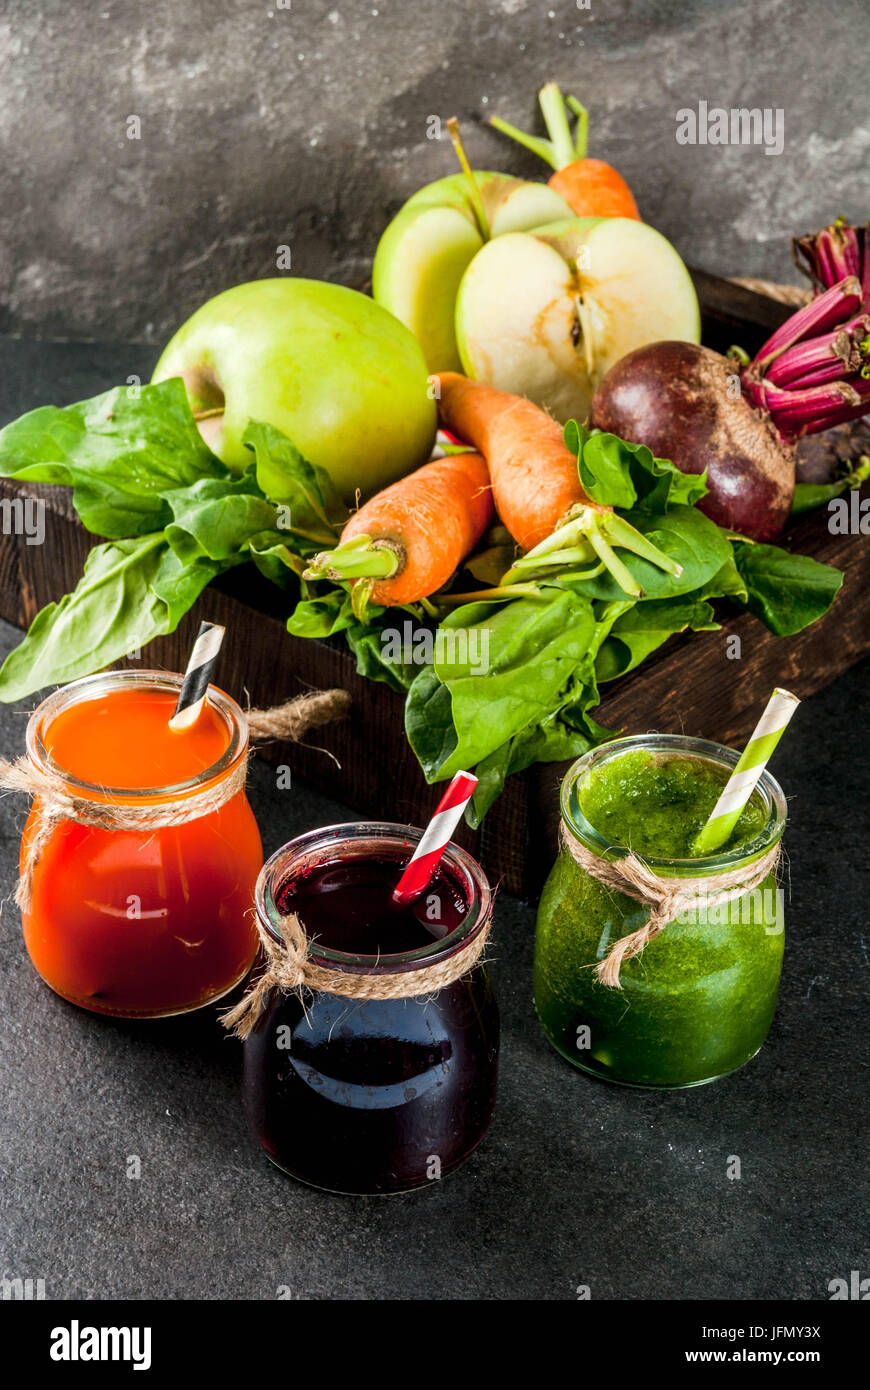 Vegan diet food. Detox drinks. Freshly squeezed juices and smoothies from vegetables: beets, carrots, spinach, cucumber, - Stock Image